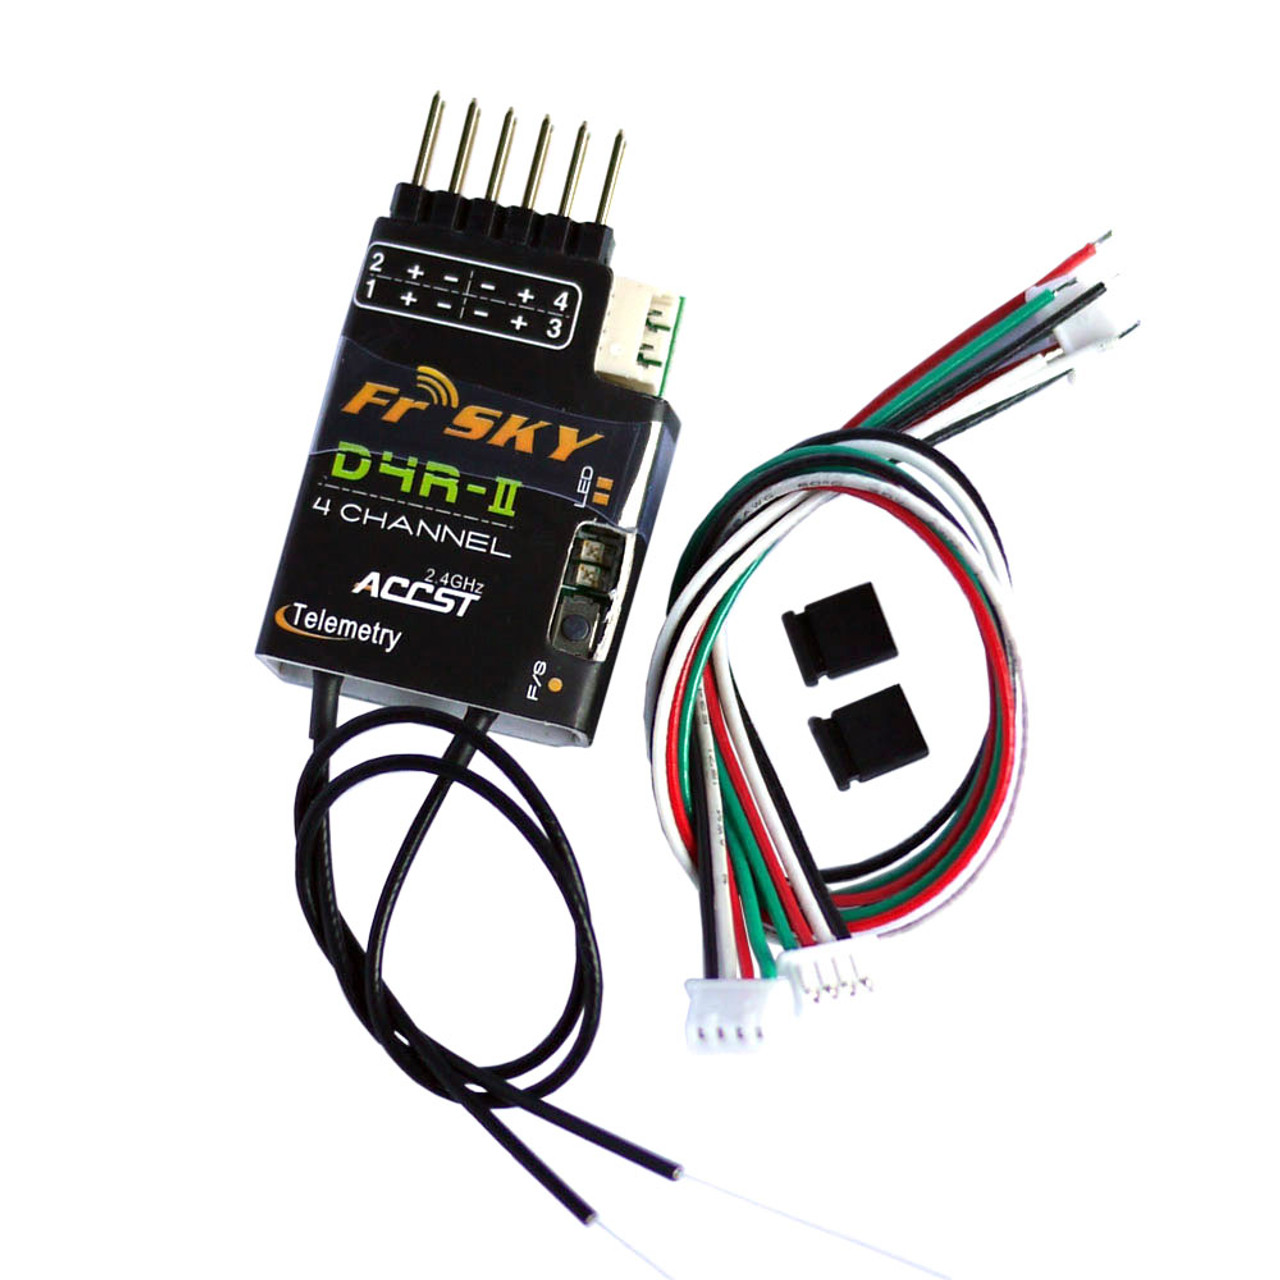 FrSky D4R-II 4ch 2 4Ghz ACCST Receiver (w/telemetry) *Out of stock